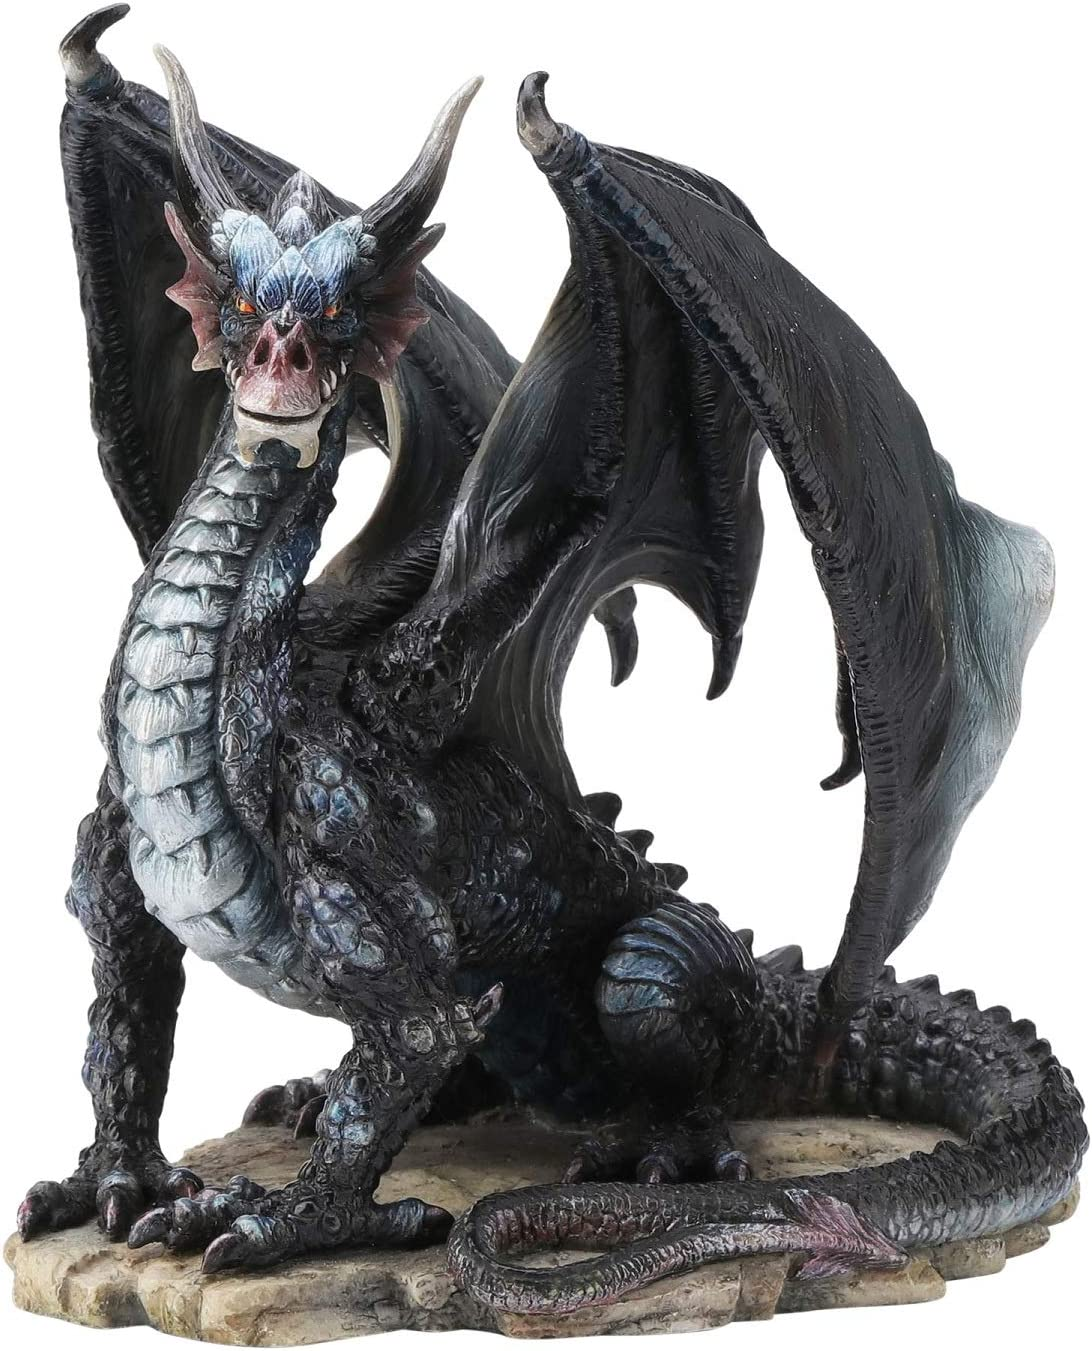 WU Rare Black Dragon Upon Rock Statue Sculpture Figurine